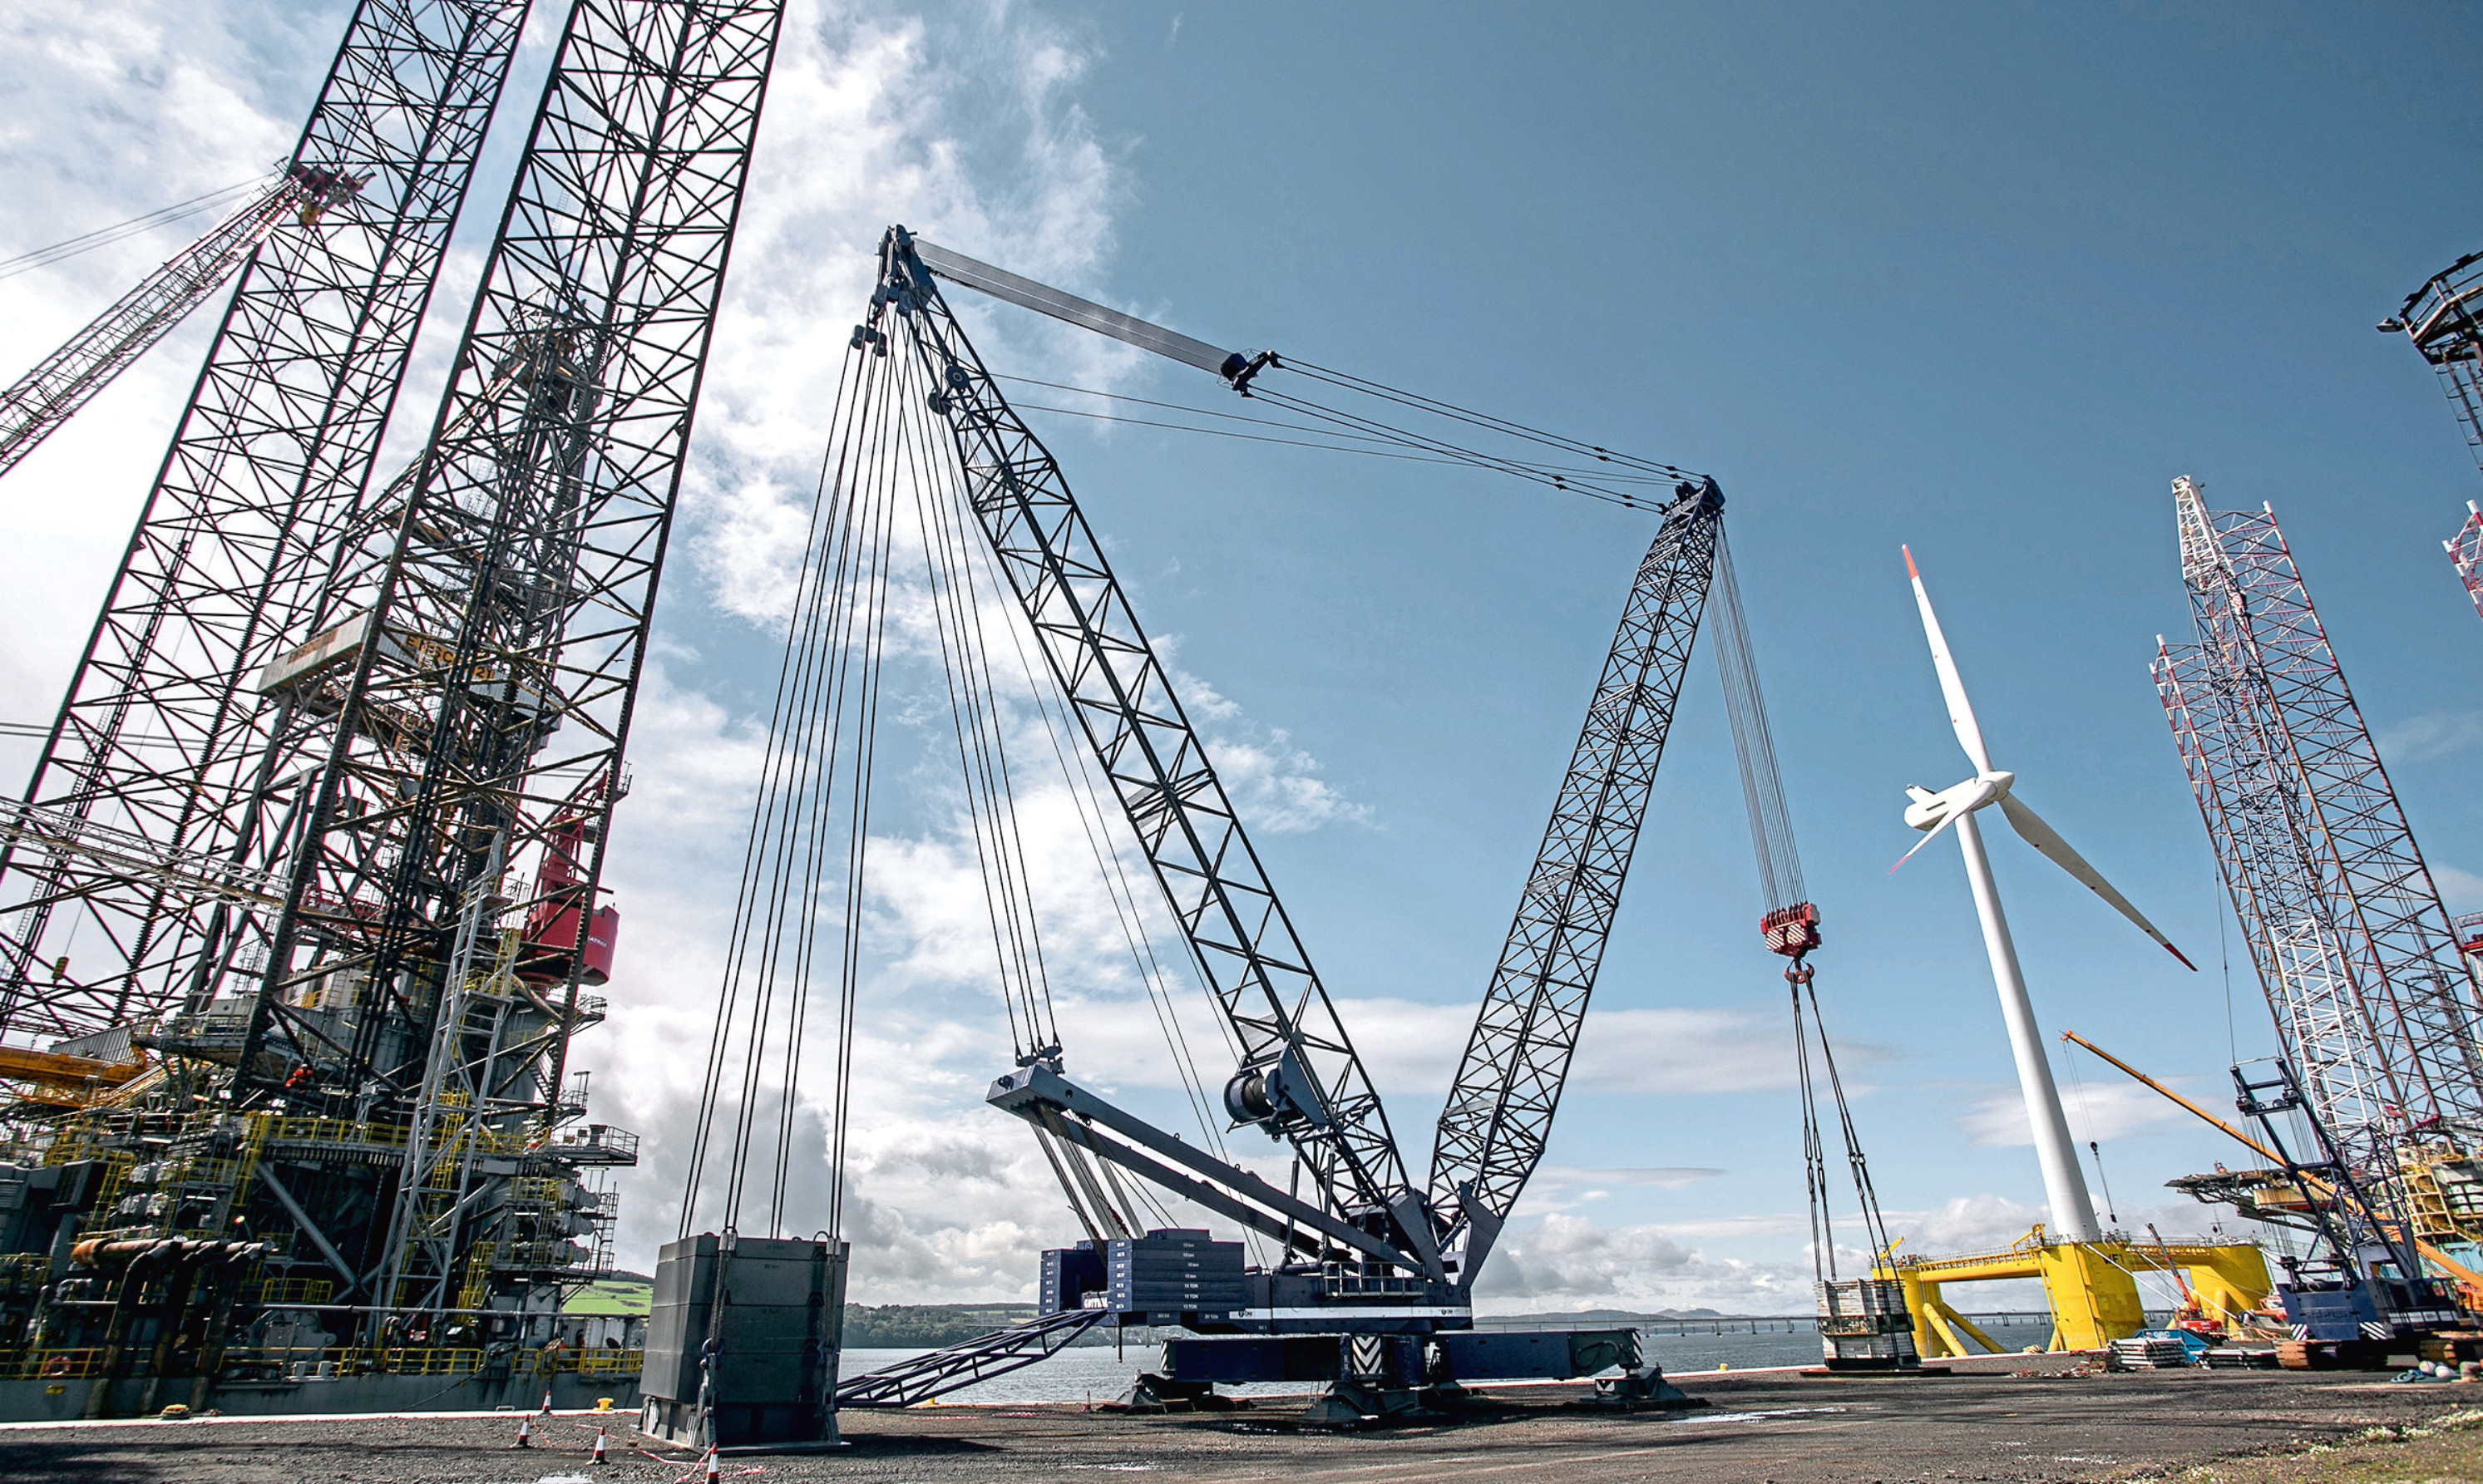 OM Heavy Lift operates the Gottwald crane at Port of Dundee.